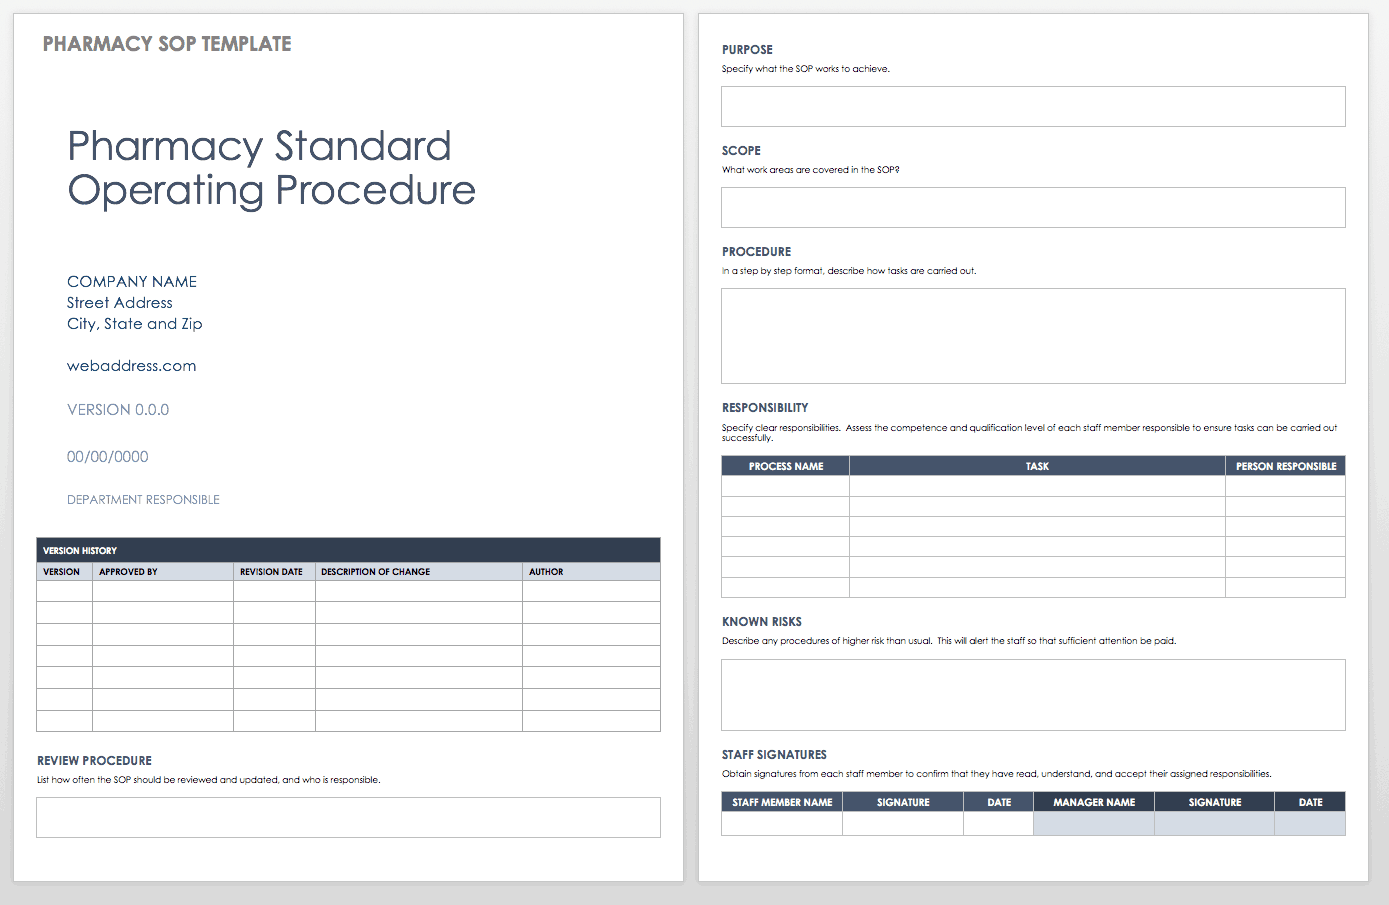 Standard operating procedures templates smartsheet pharmacy standard operating procedure template maxwellsz